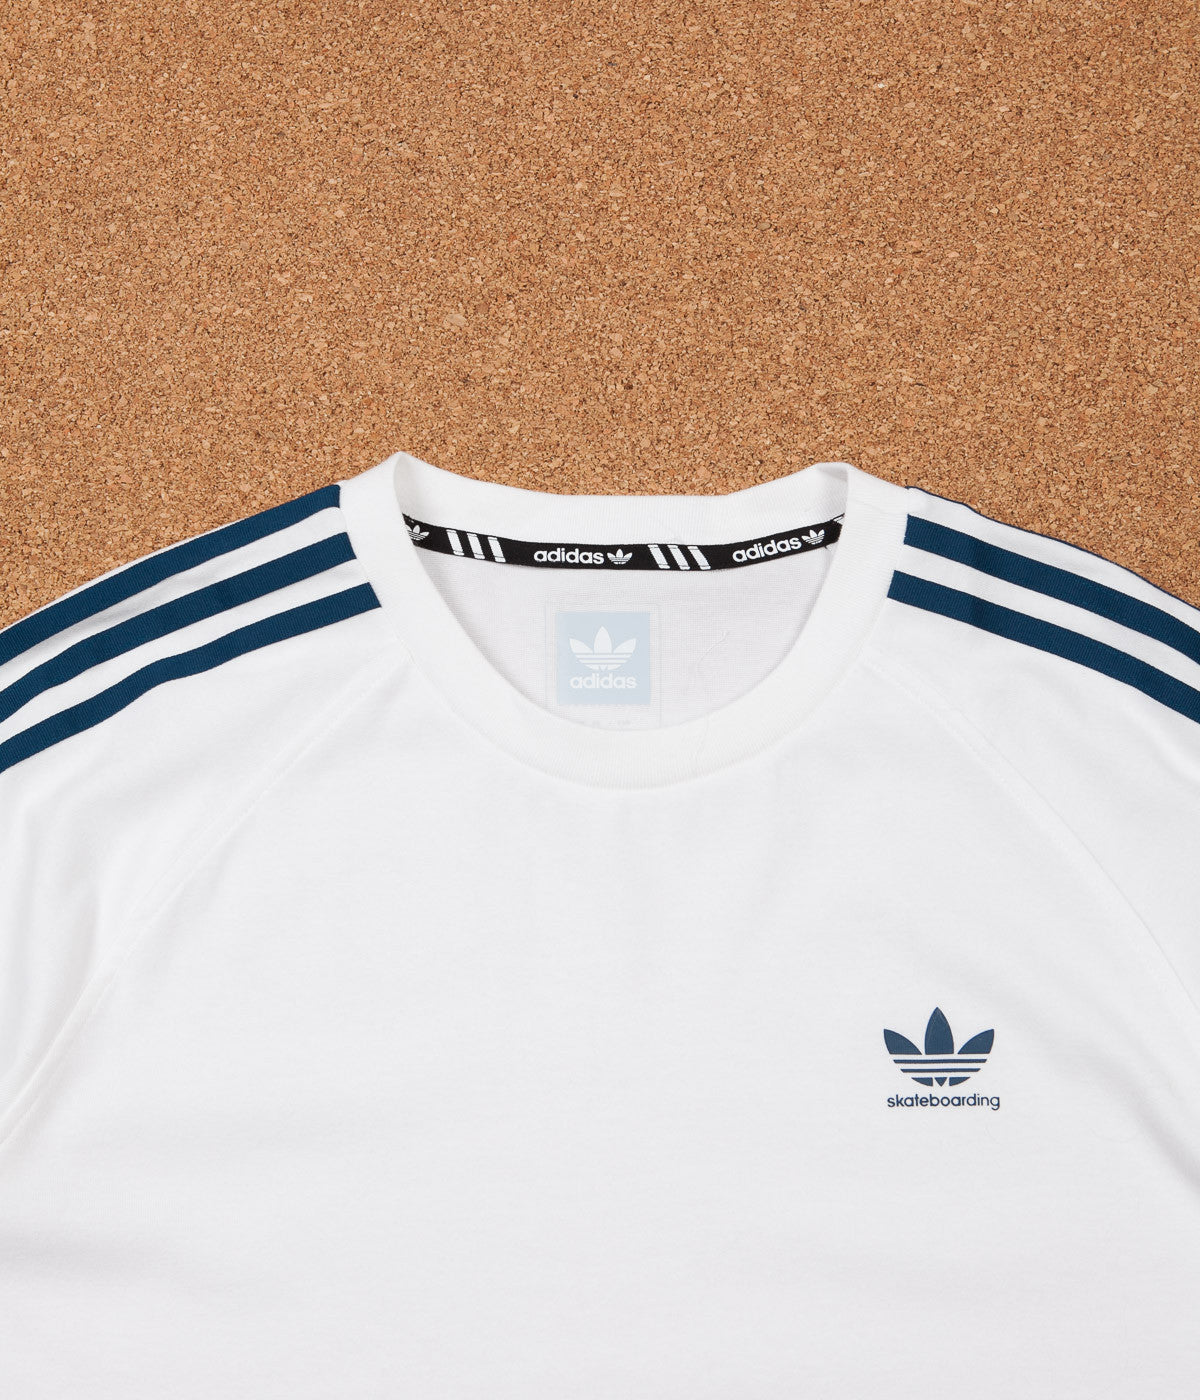 Adidas California 2.0 T-Shirt - White / Blue